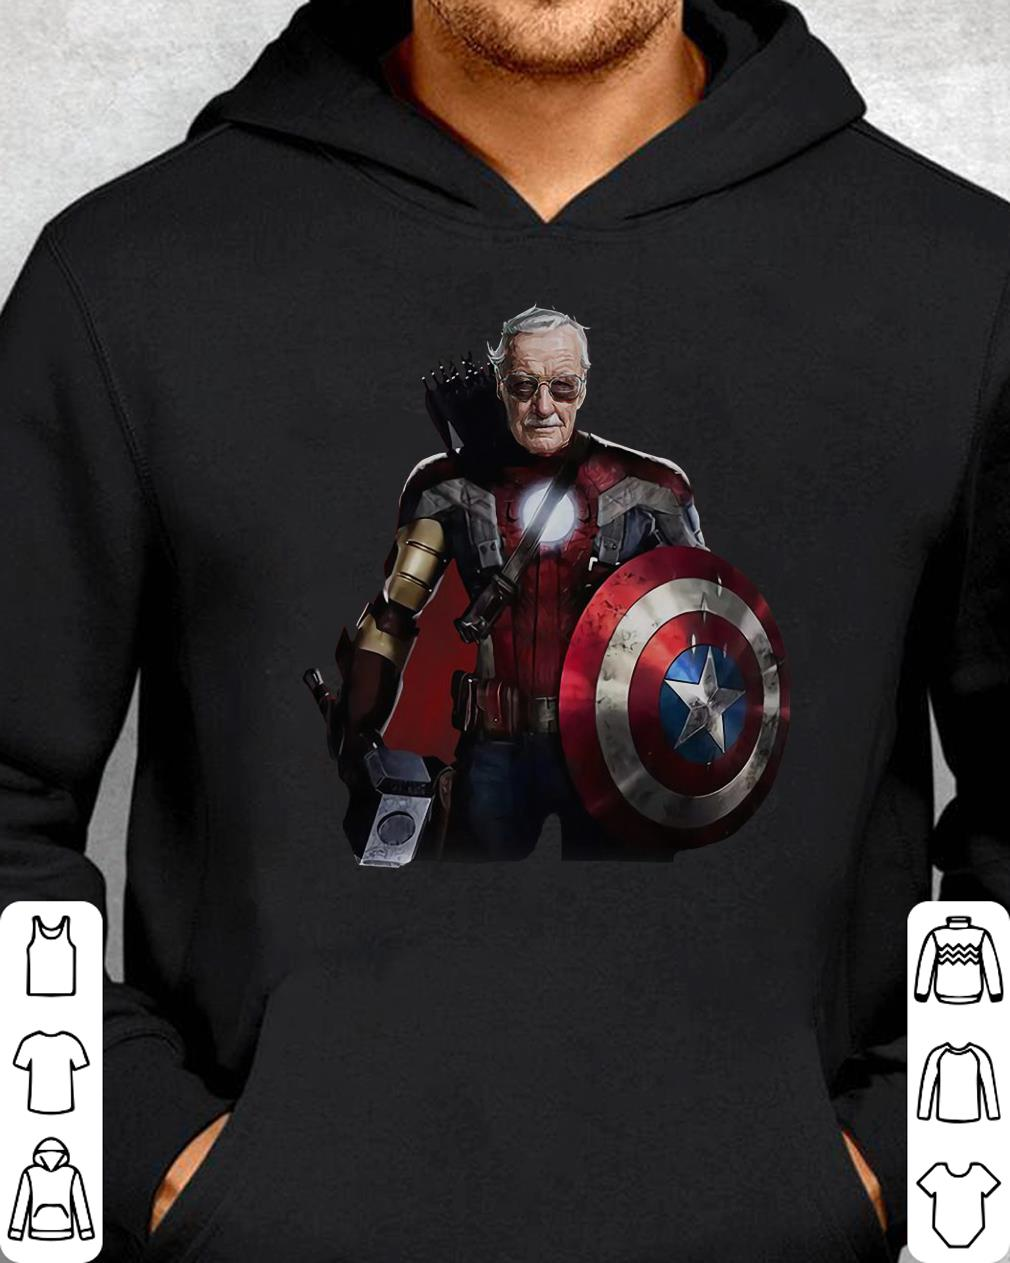 https://teeforme.net/tee/2018/11/Premium-Stan-Lee-Superhero-shirt_4.jpg